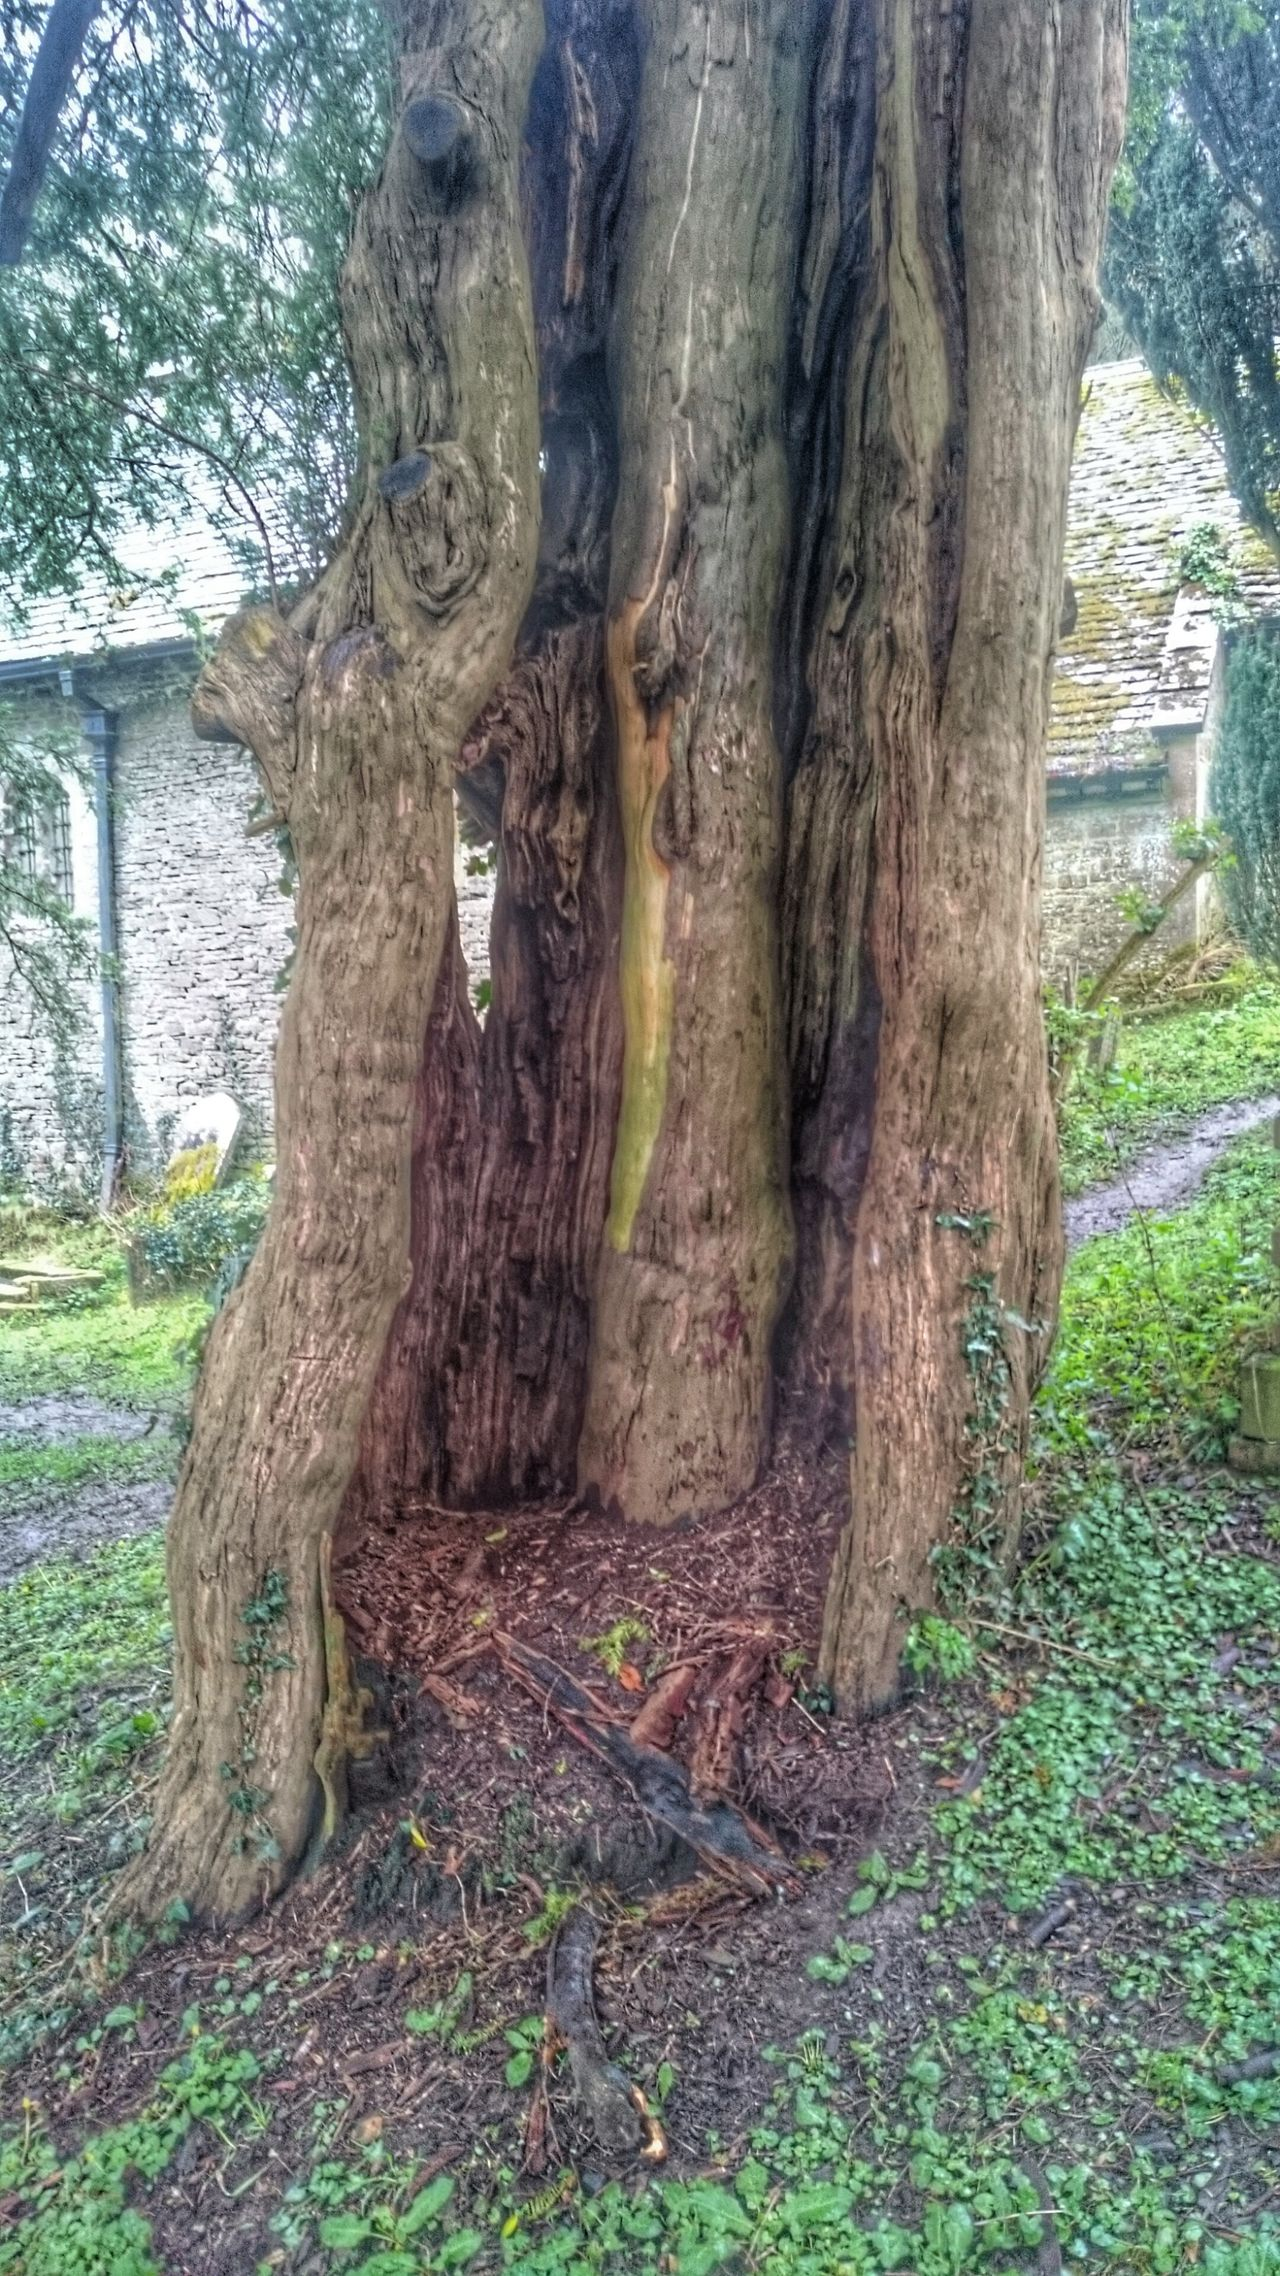 Wales Photography Taking Photos Check This Out Tree Old Tree Dying Tree Inside Out Inside Things Walking Around Hugging A Tree Escaping Nature Interesting Perspectives Bark